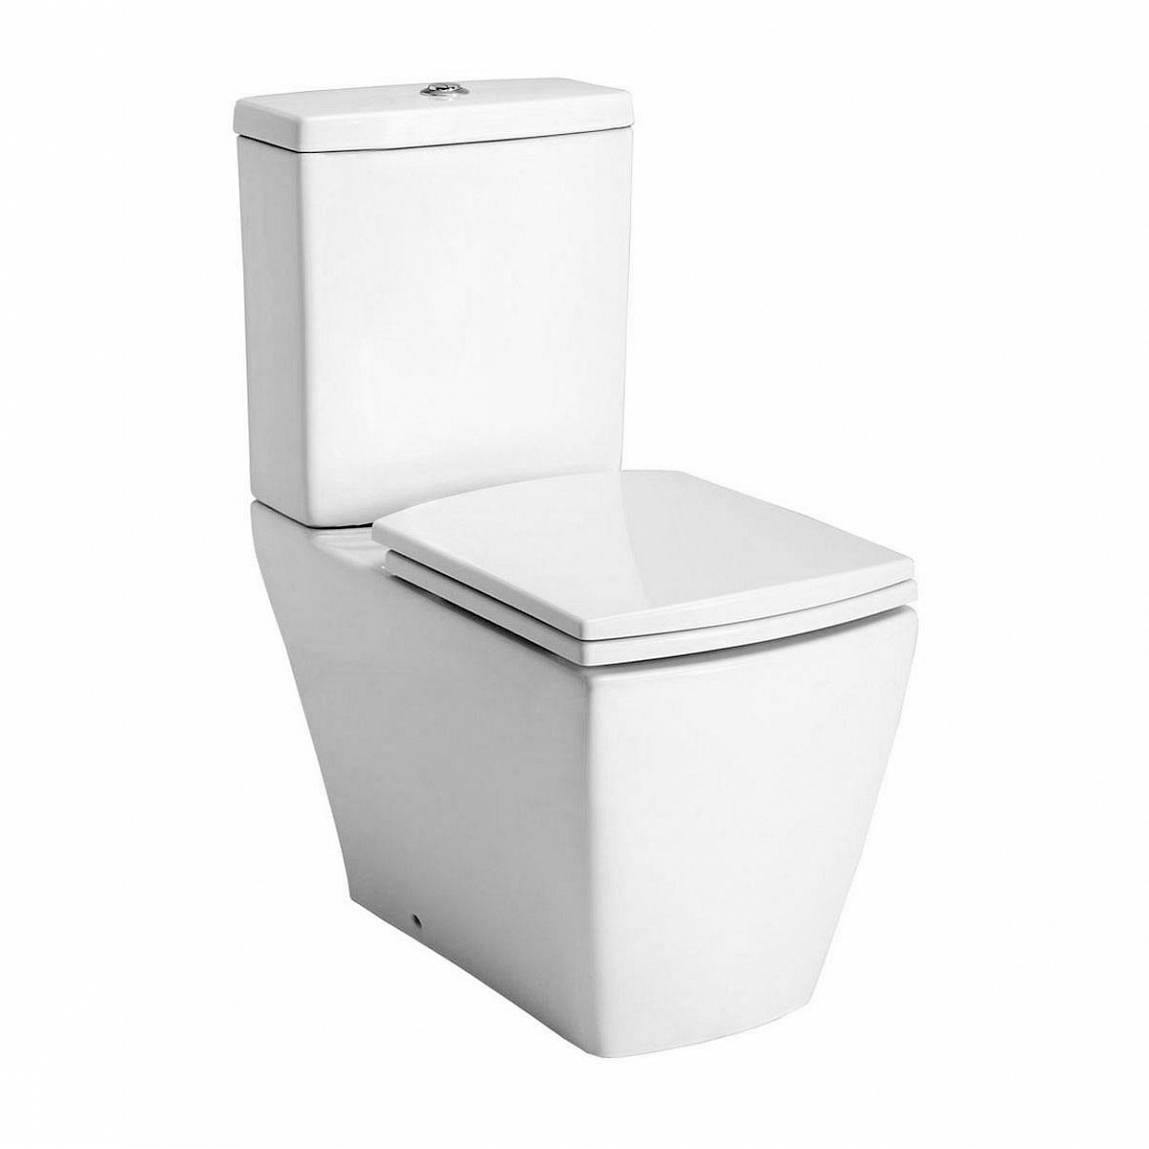 Image of Montreal Close Coupled Toilet inc Seat